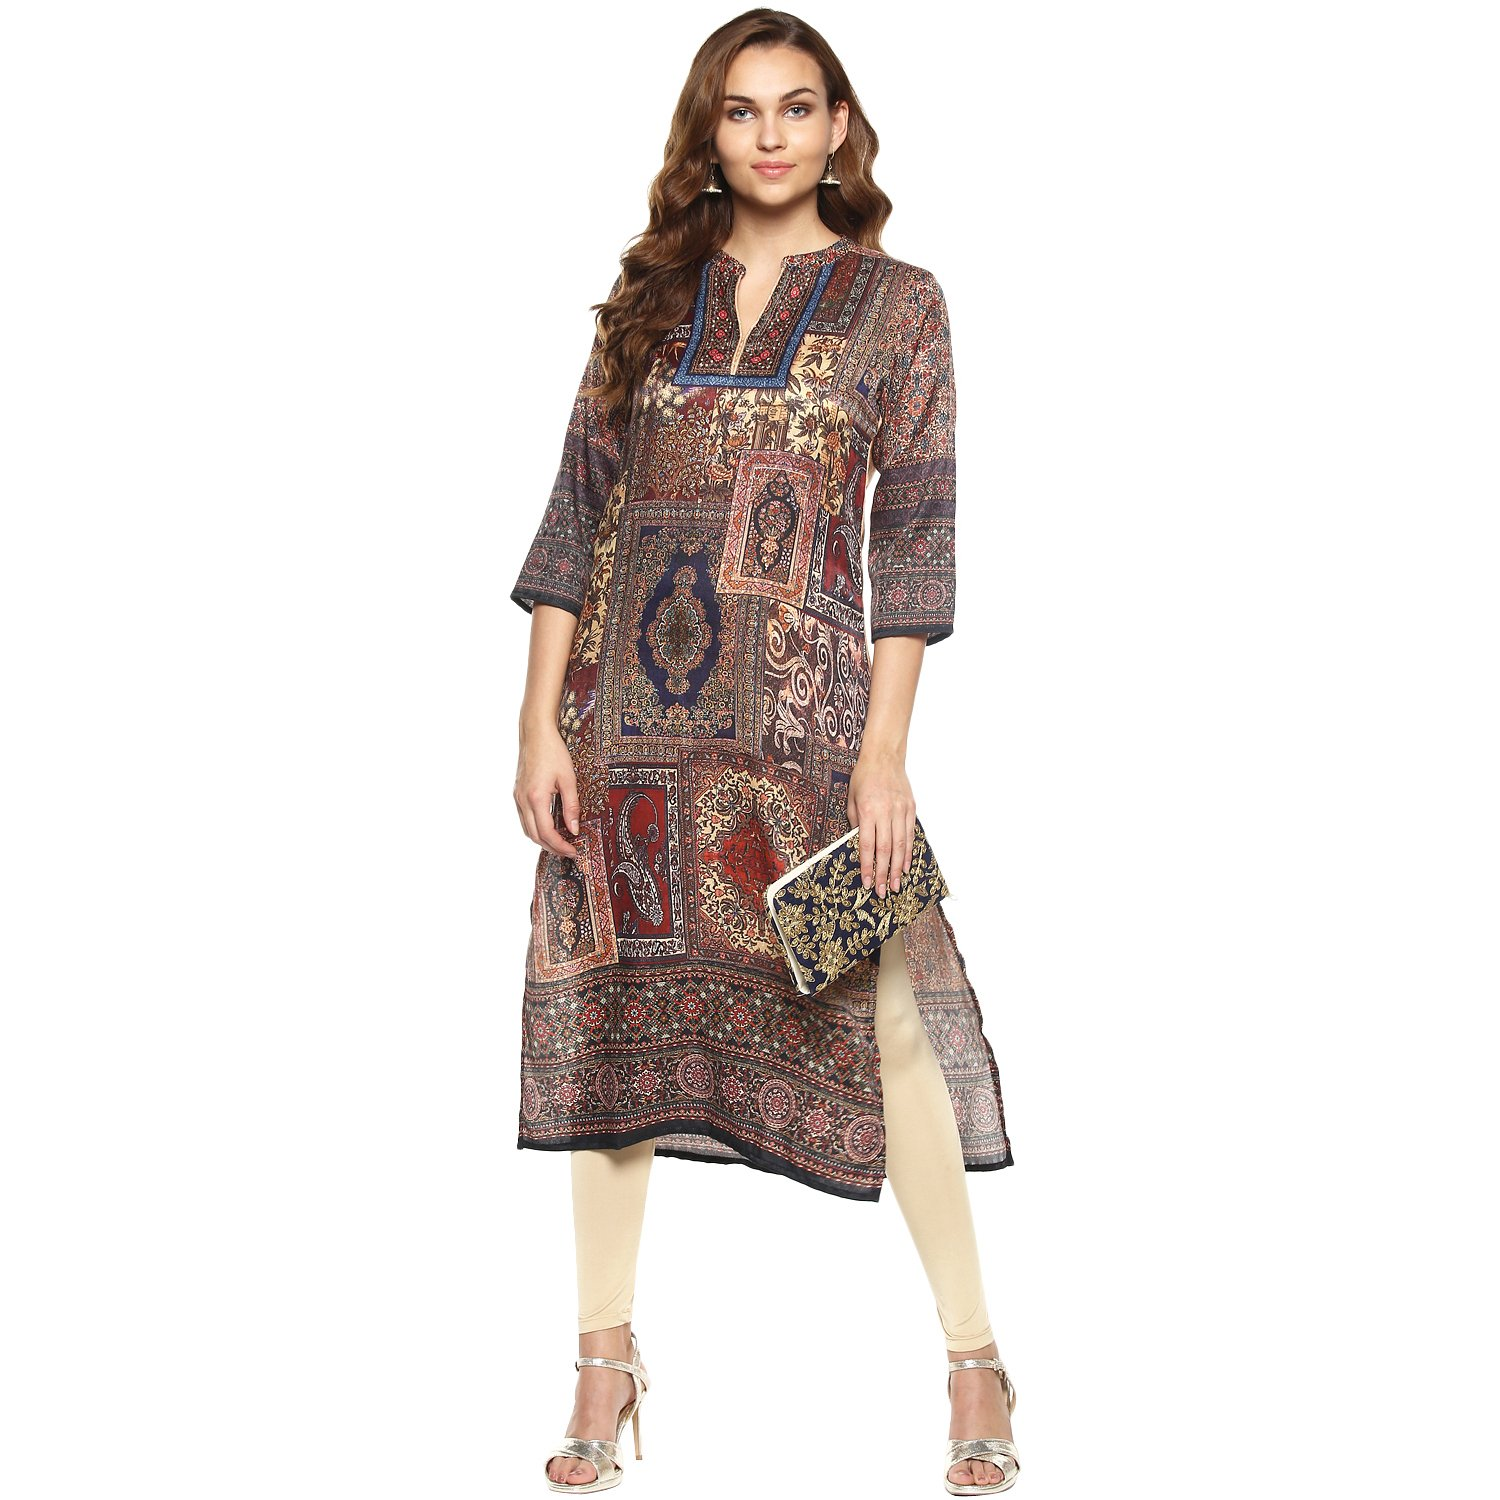 Lagi Kurtis Ethnic Women Kurta Kurti Tunic Digital Print Top Dress Casual Wear New Launch by Multicolored